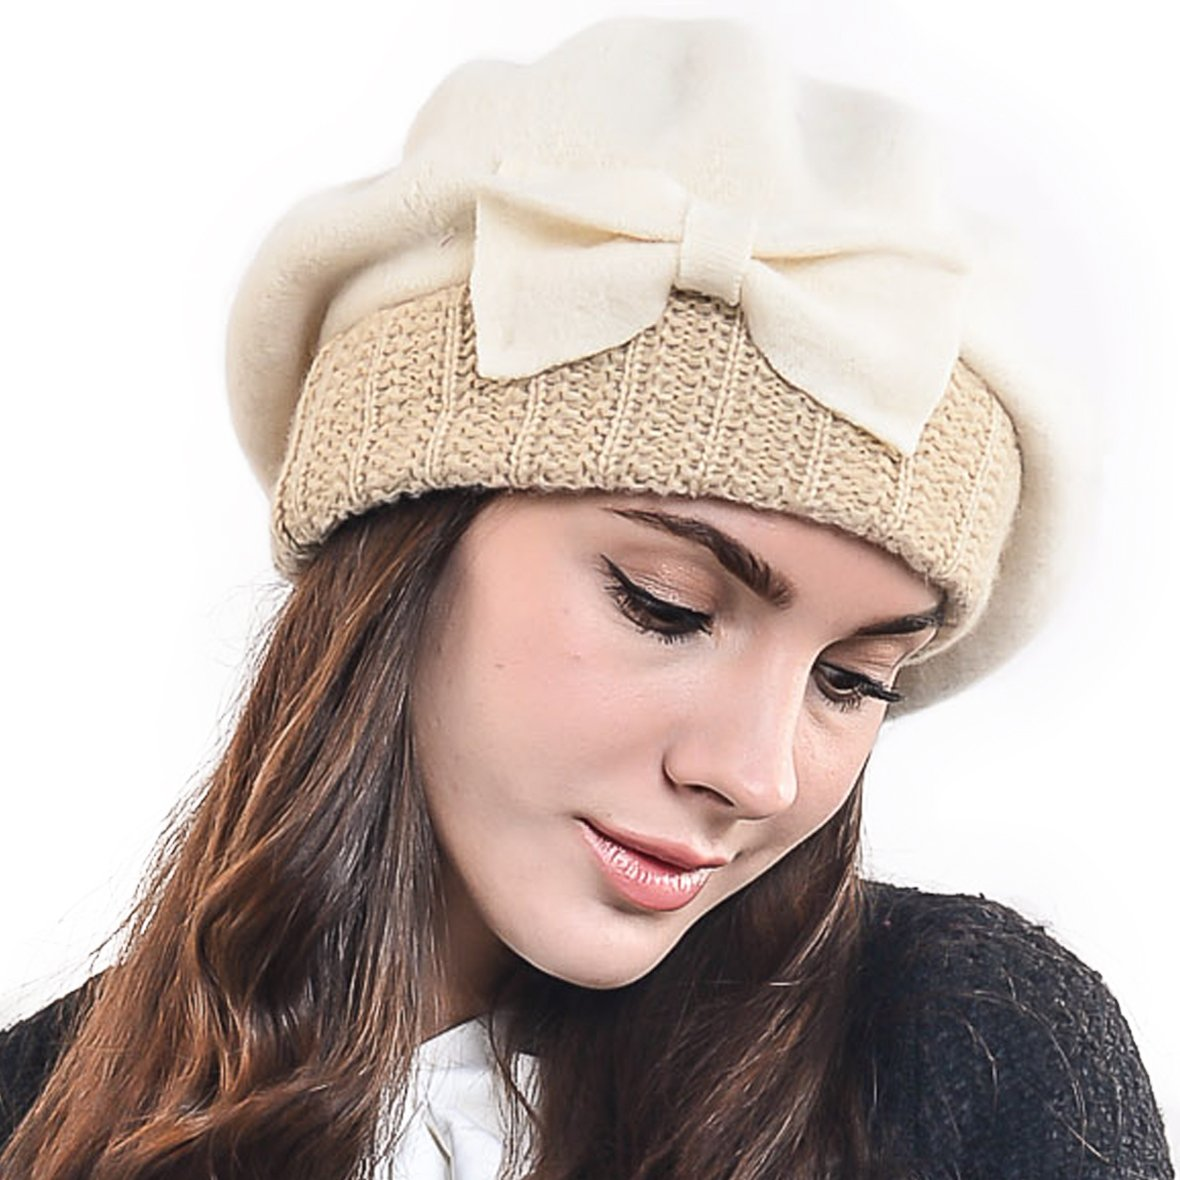 534e07b9802 F N STORY Lady French Beret Wool Chic Beanie Winter Hat Jf-br034 ...